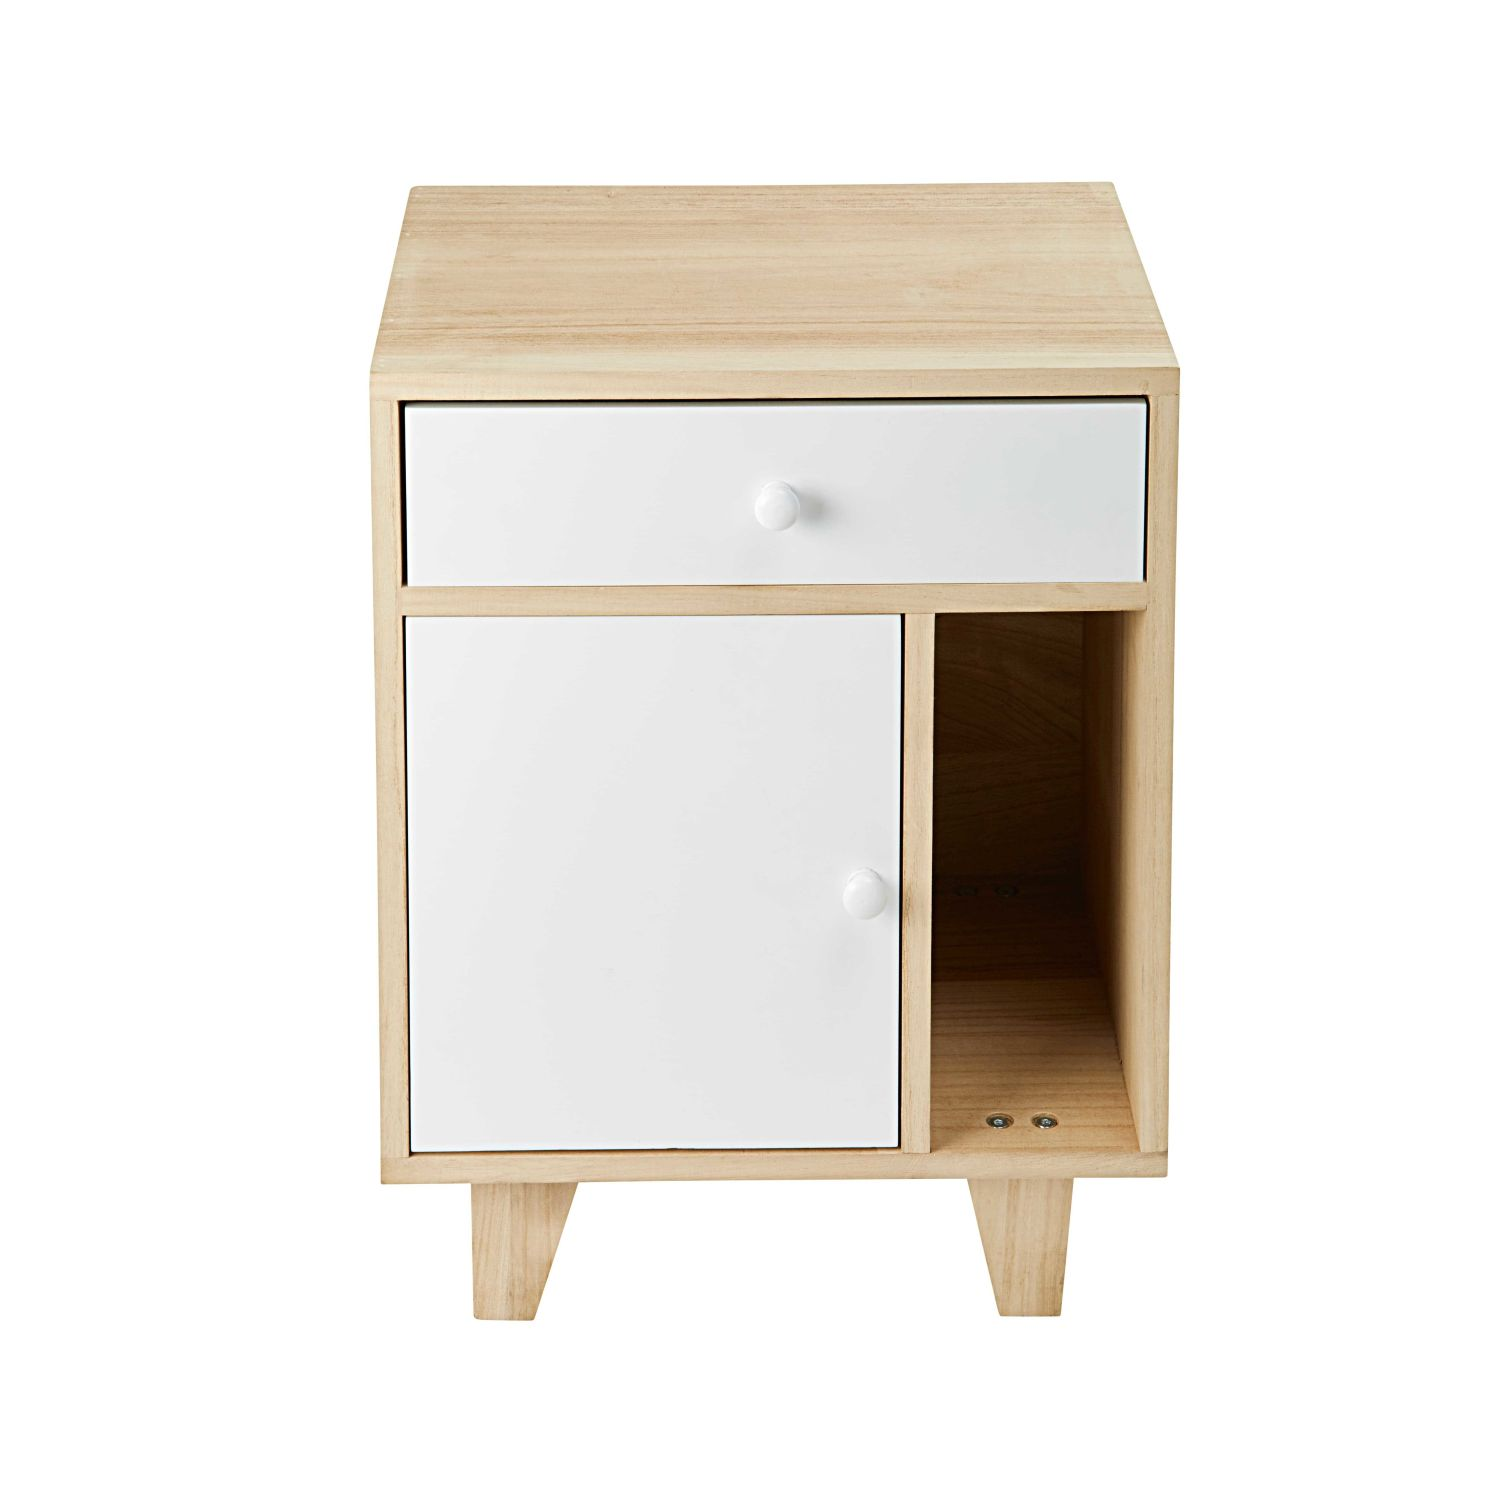 1 door 1 drawer bedside table in white paulownia maisons du monde - Maison du monde table de nuit ...